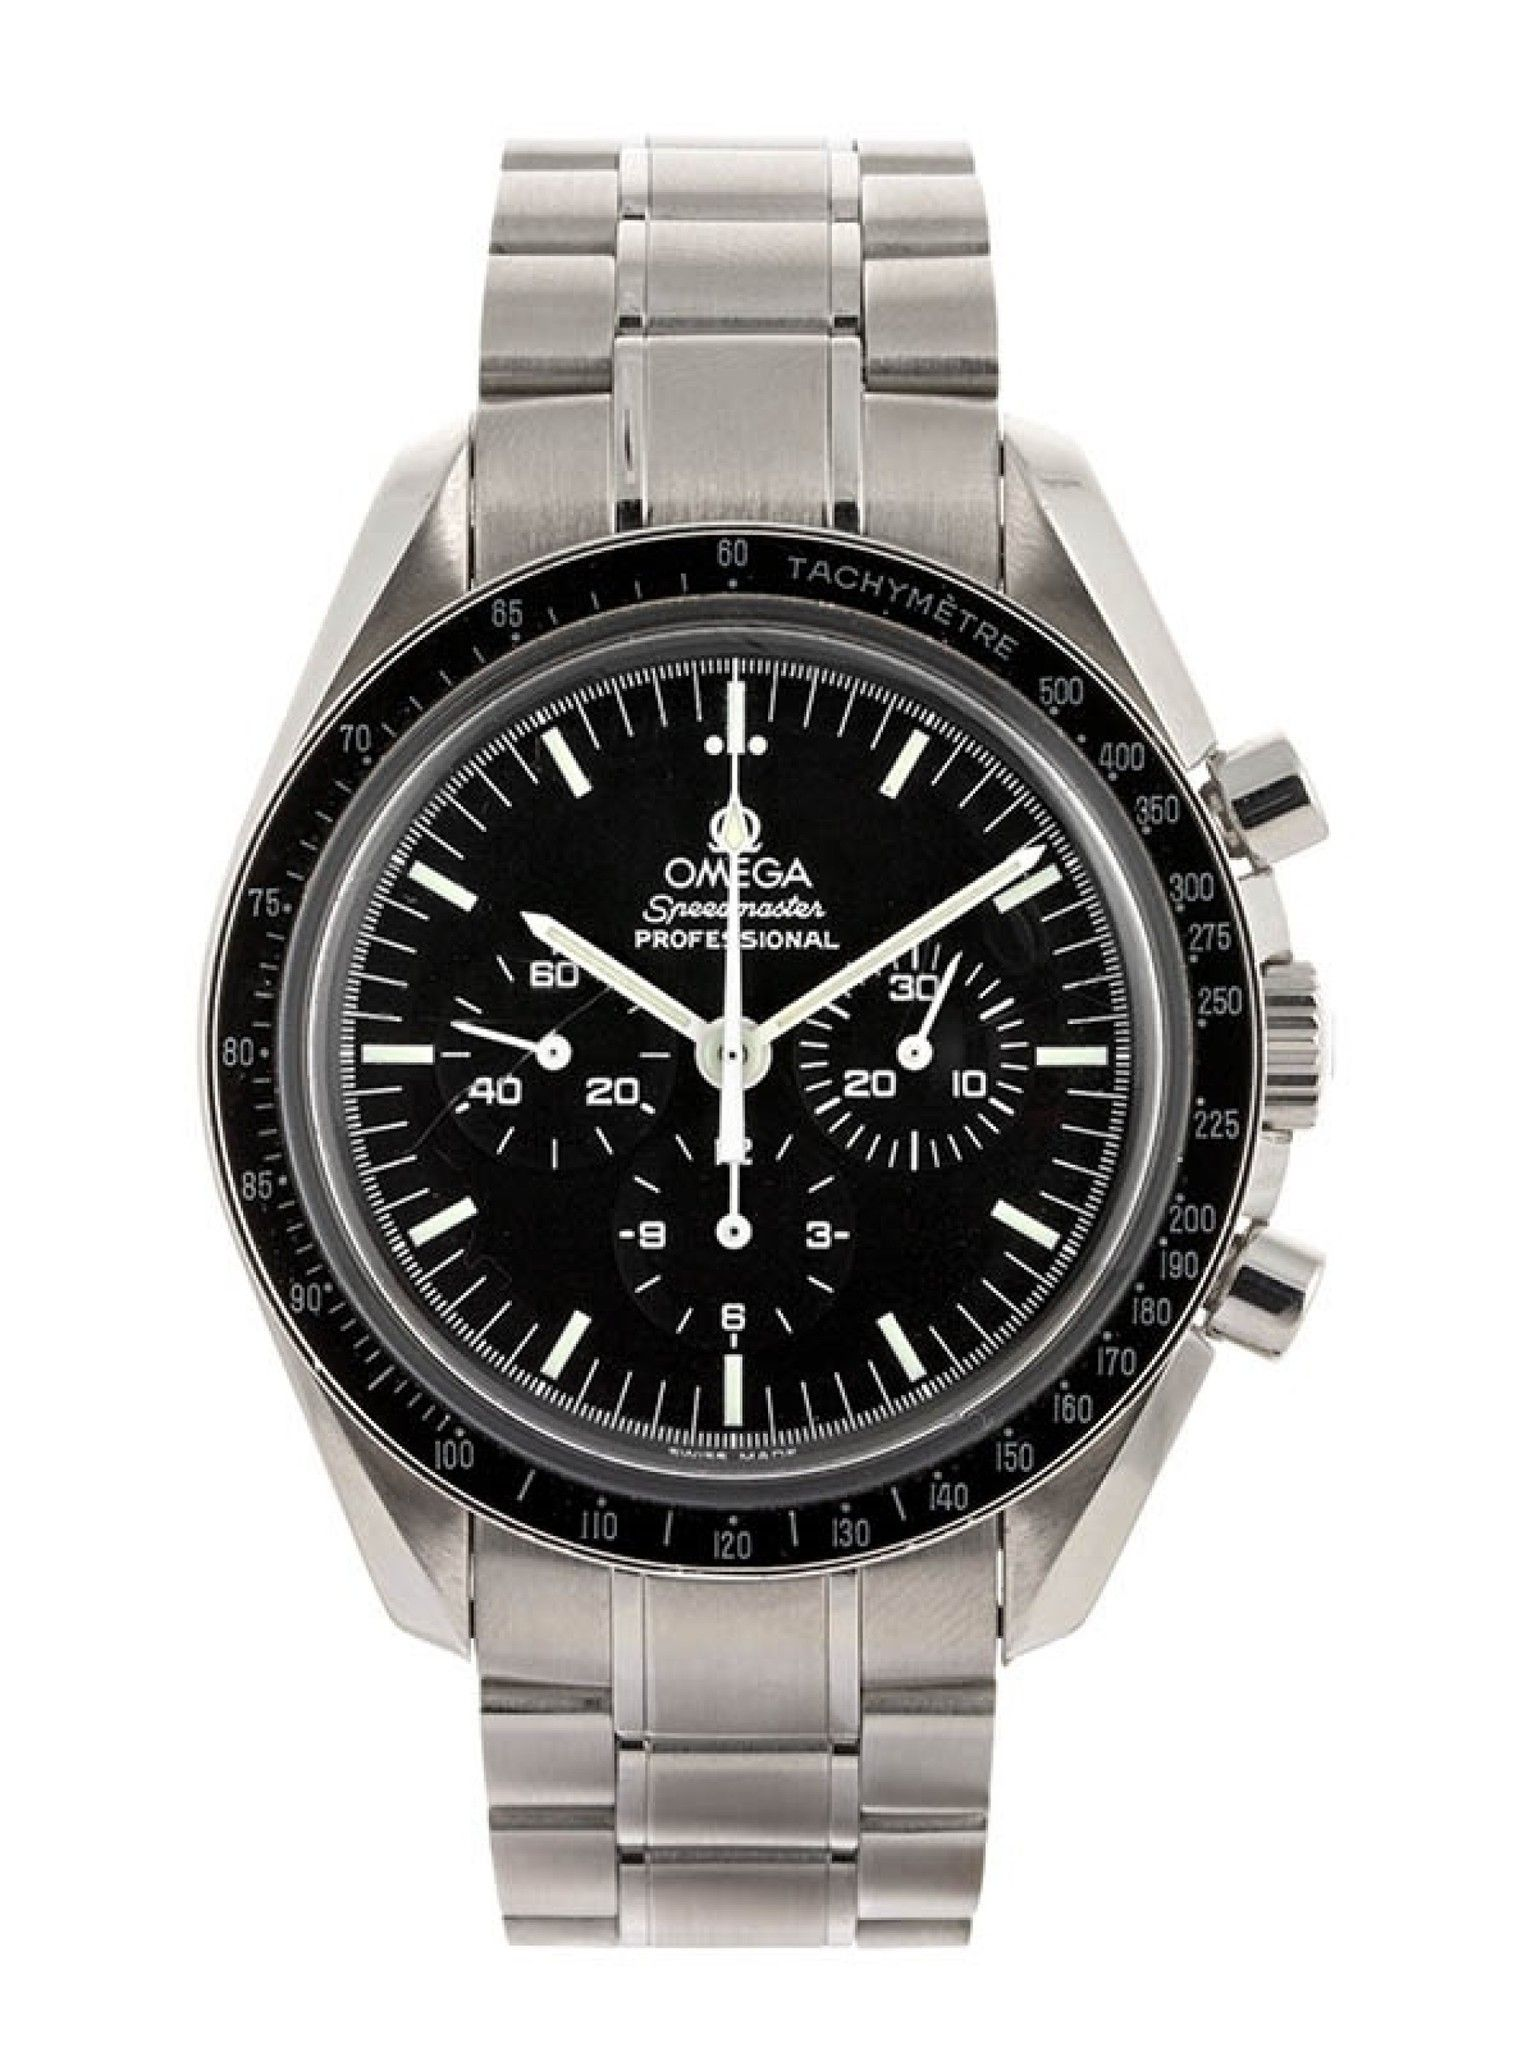 OMEGA SPEEDMASTER MOONWATCH 42MM IN ACCIAIO REFERENZA 3570.5000